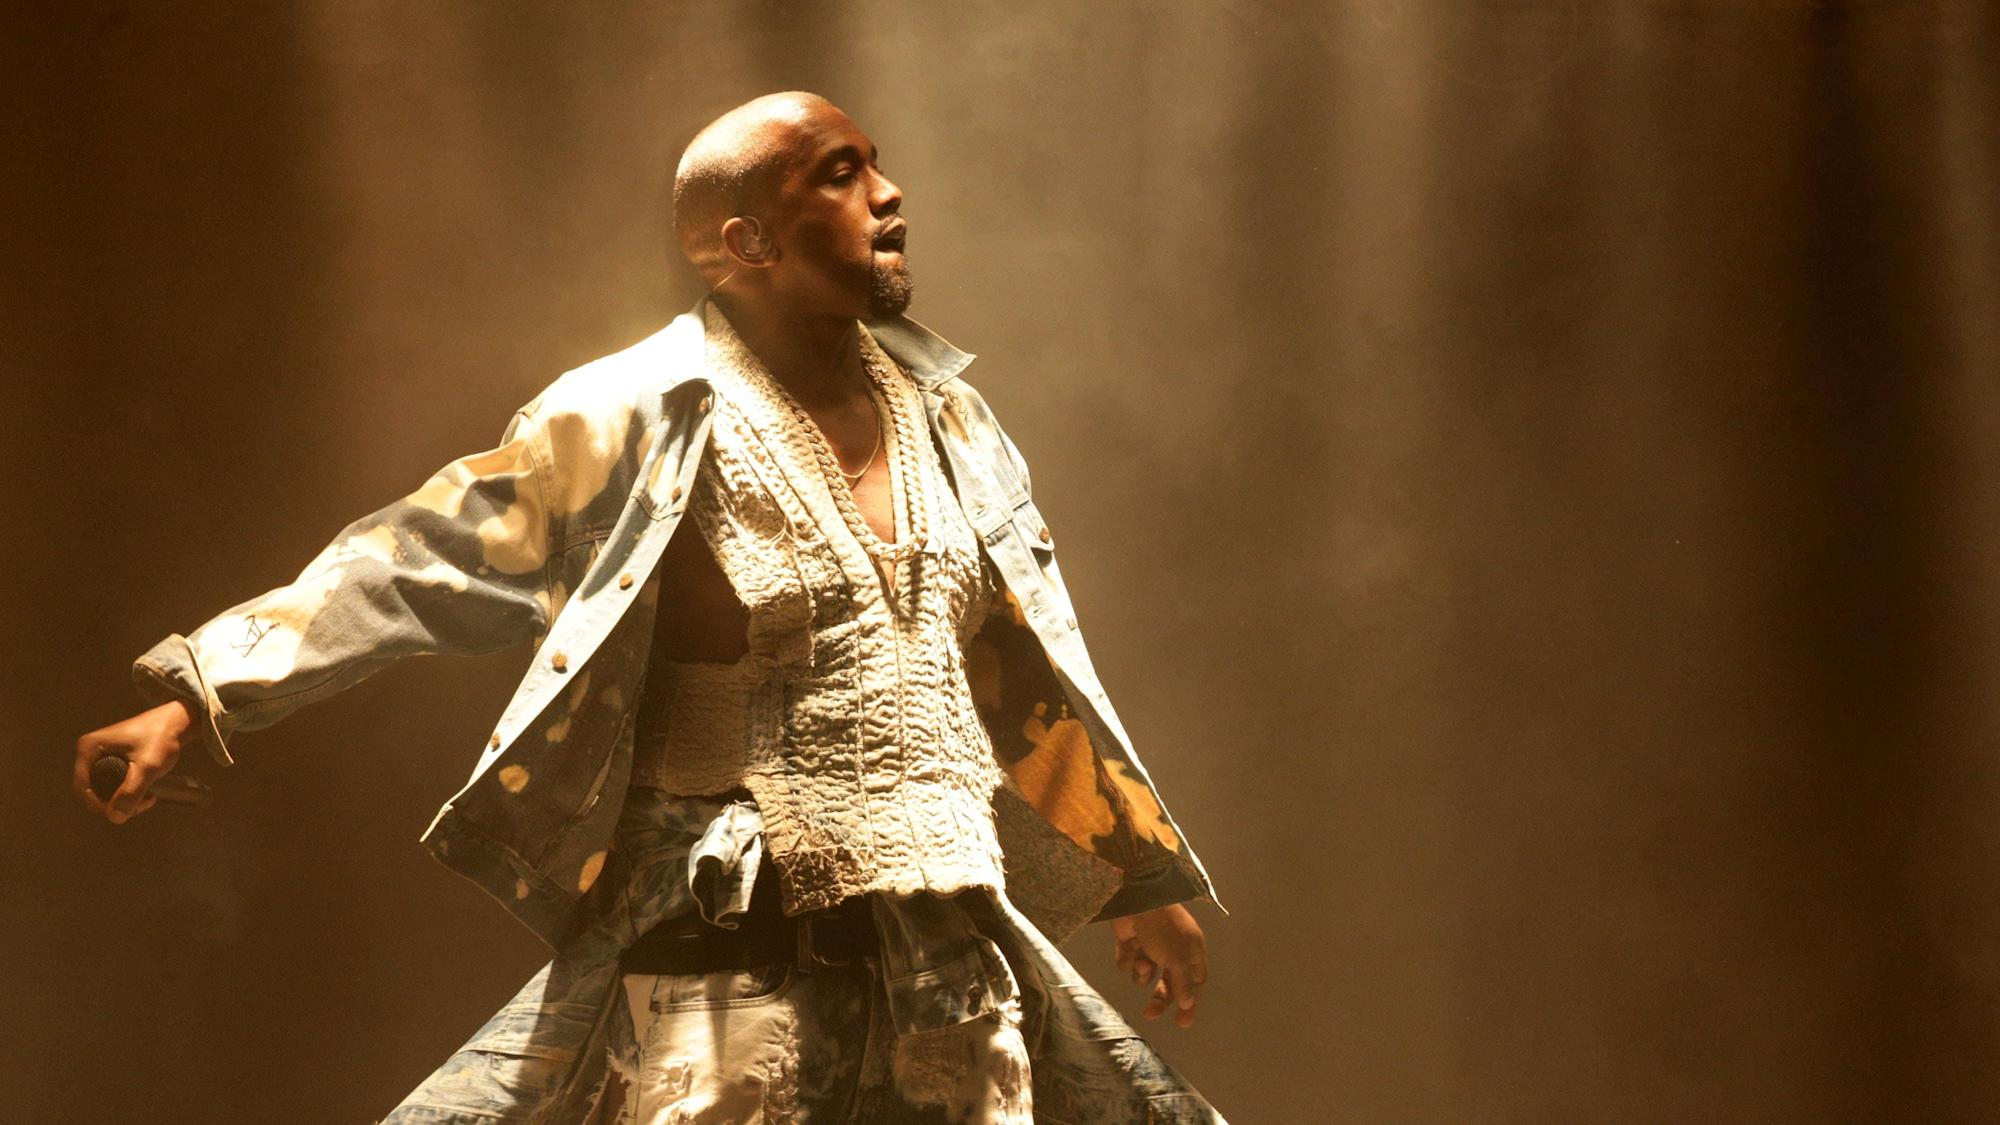 Kanye West: The controversial rapper making waves in music, fashion and politics